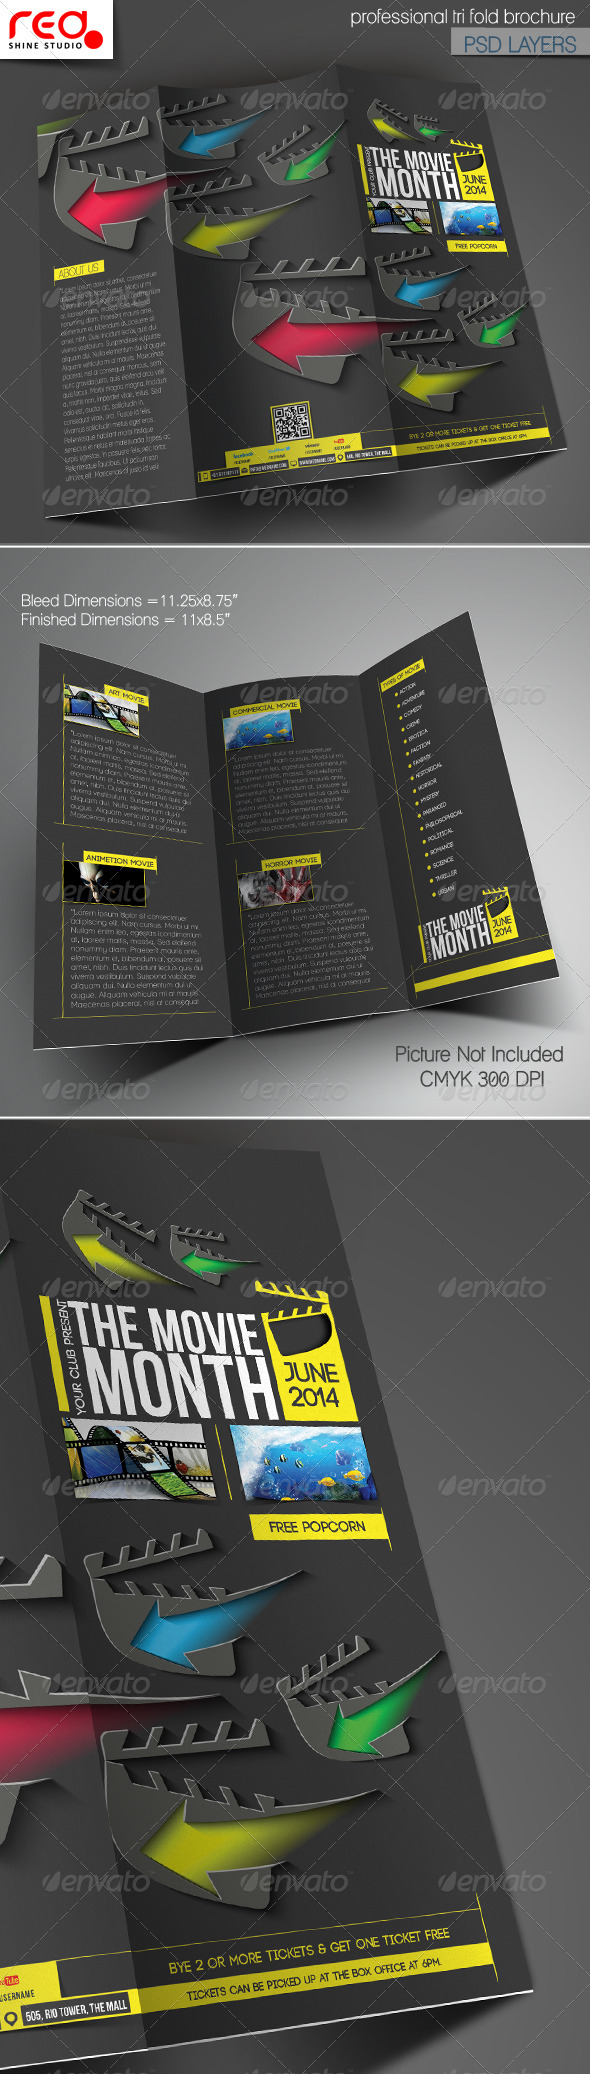 the movie month trifold brochure template corporate brochures